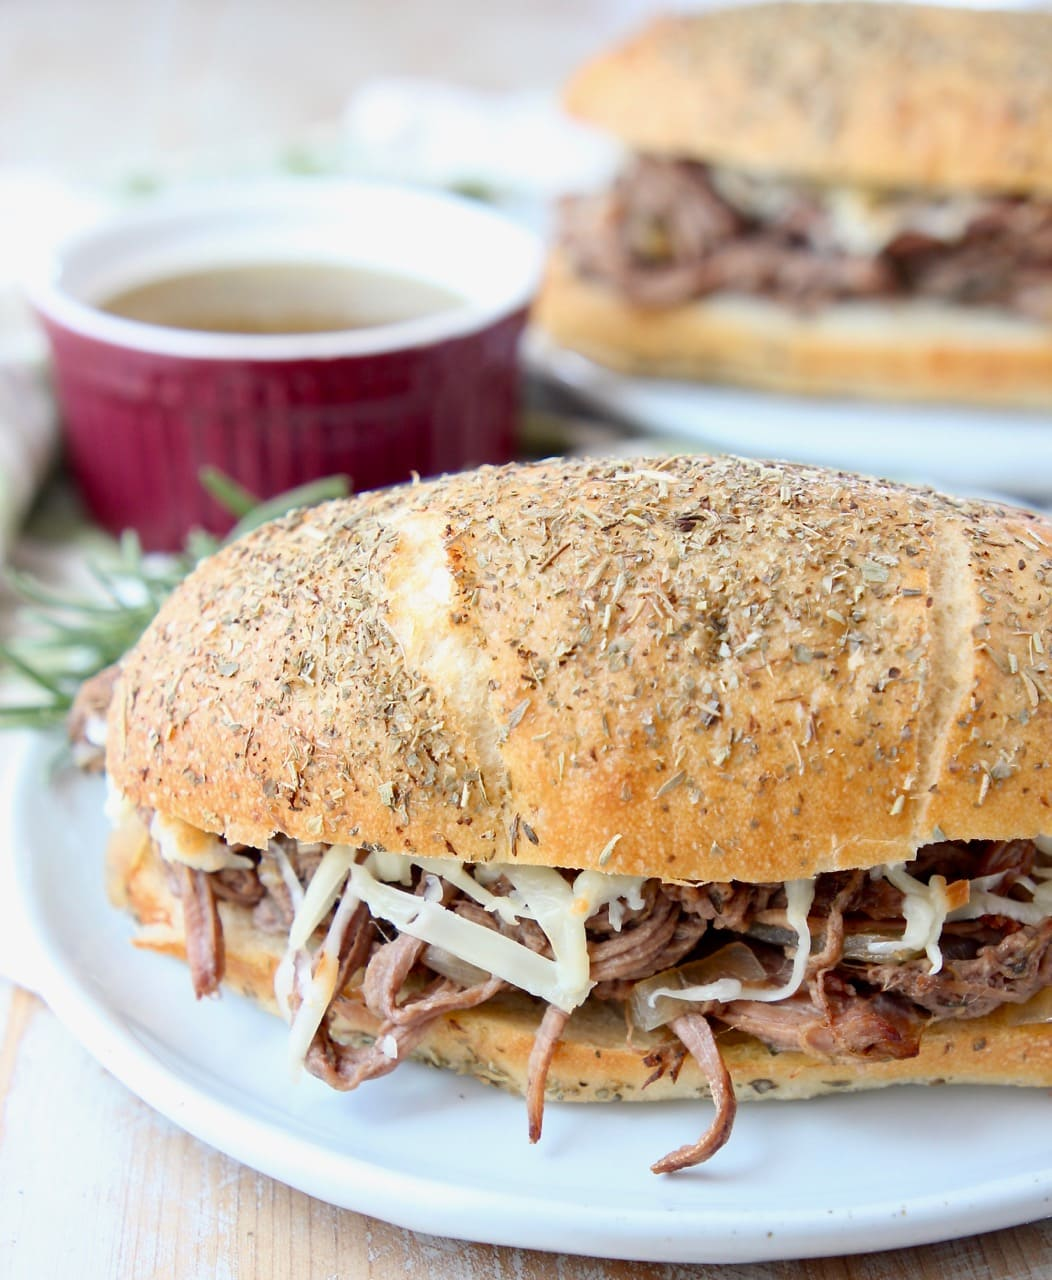 Shredded tri tip sandwich on plate with bowl of au jus